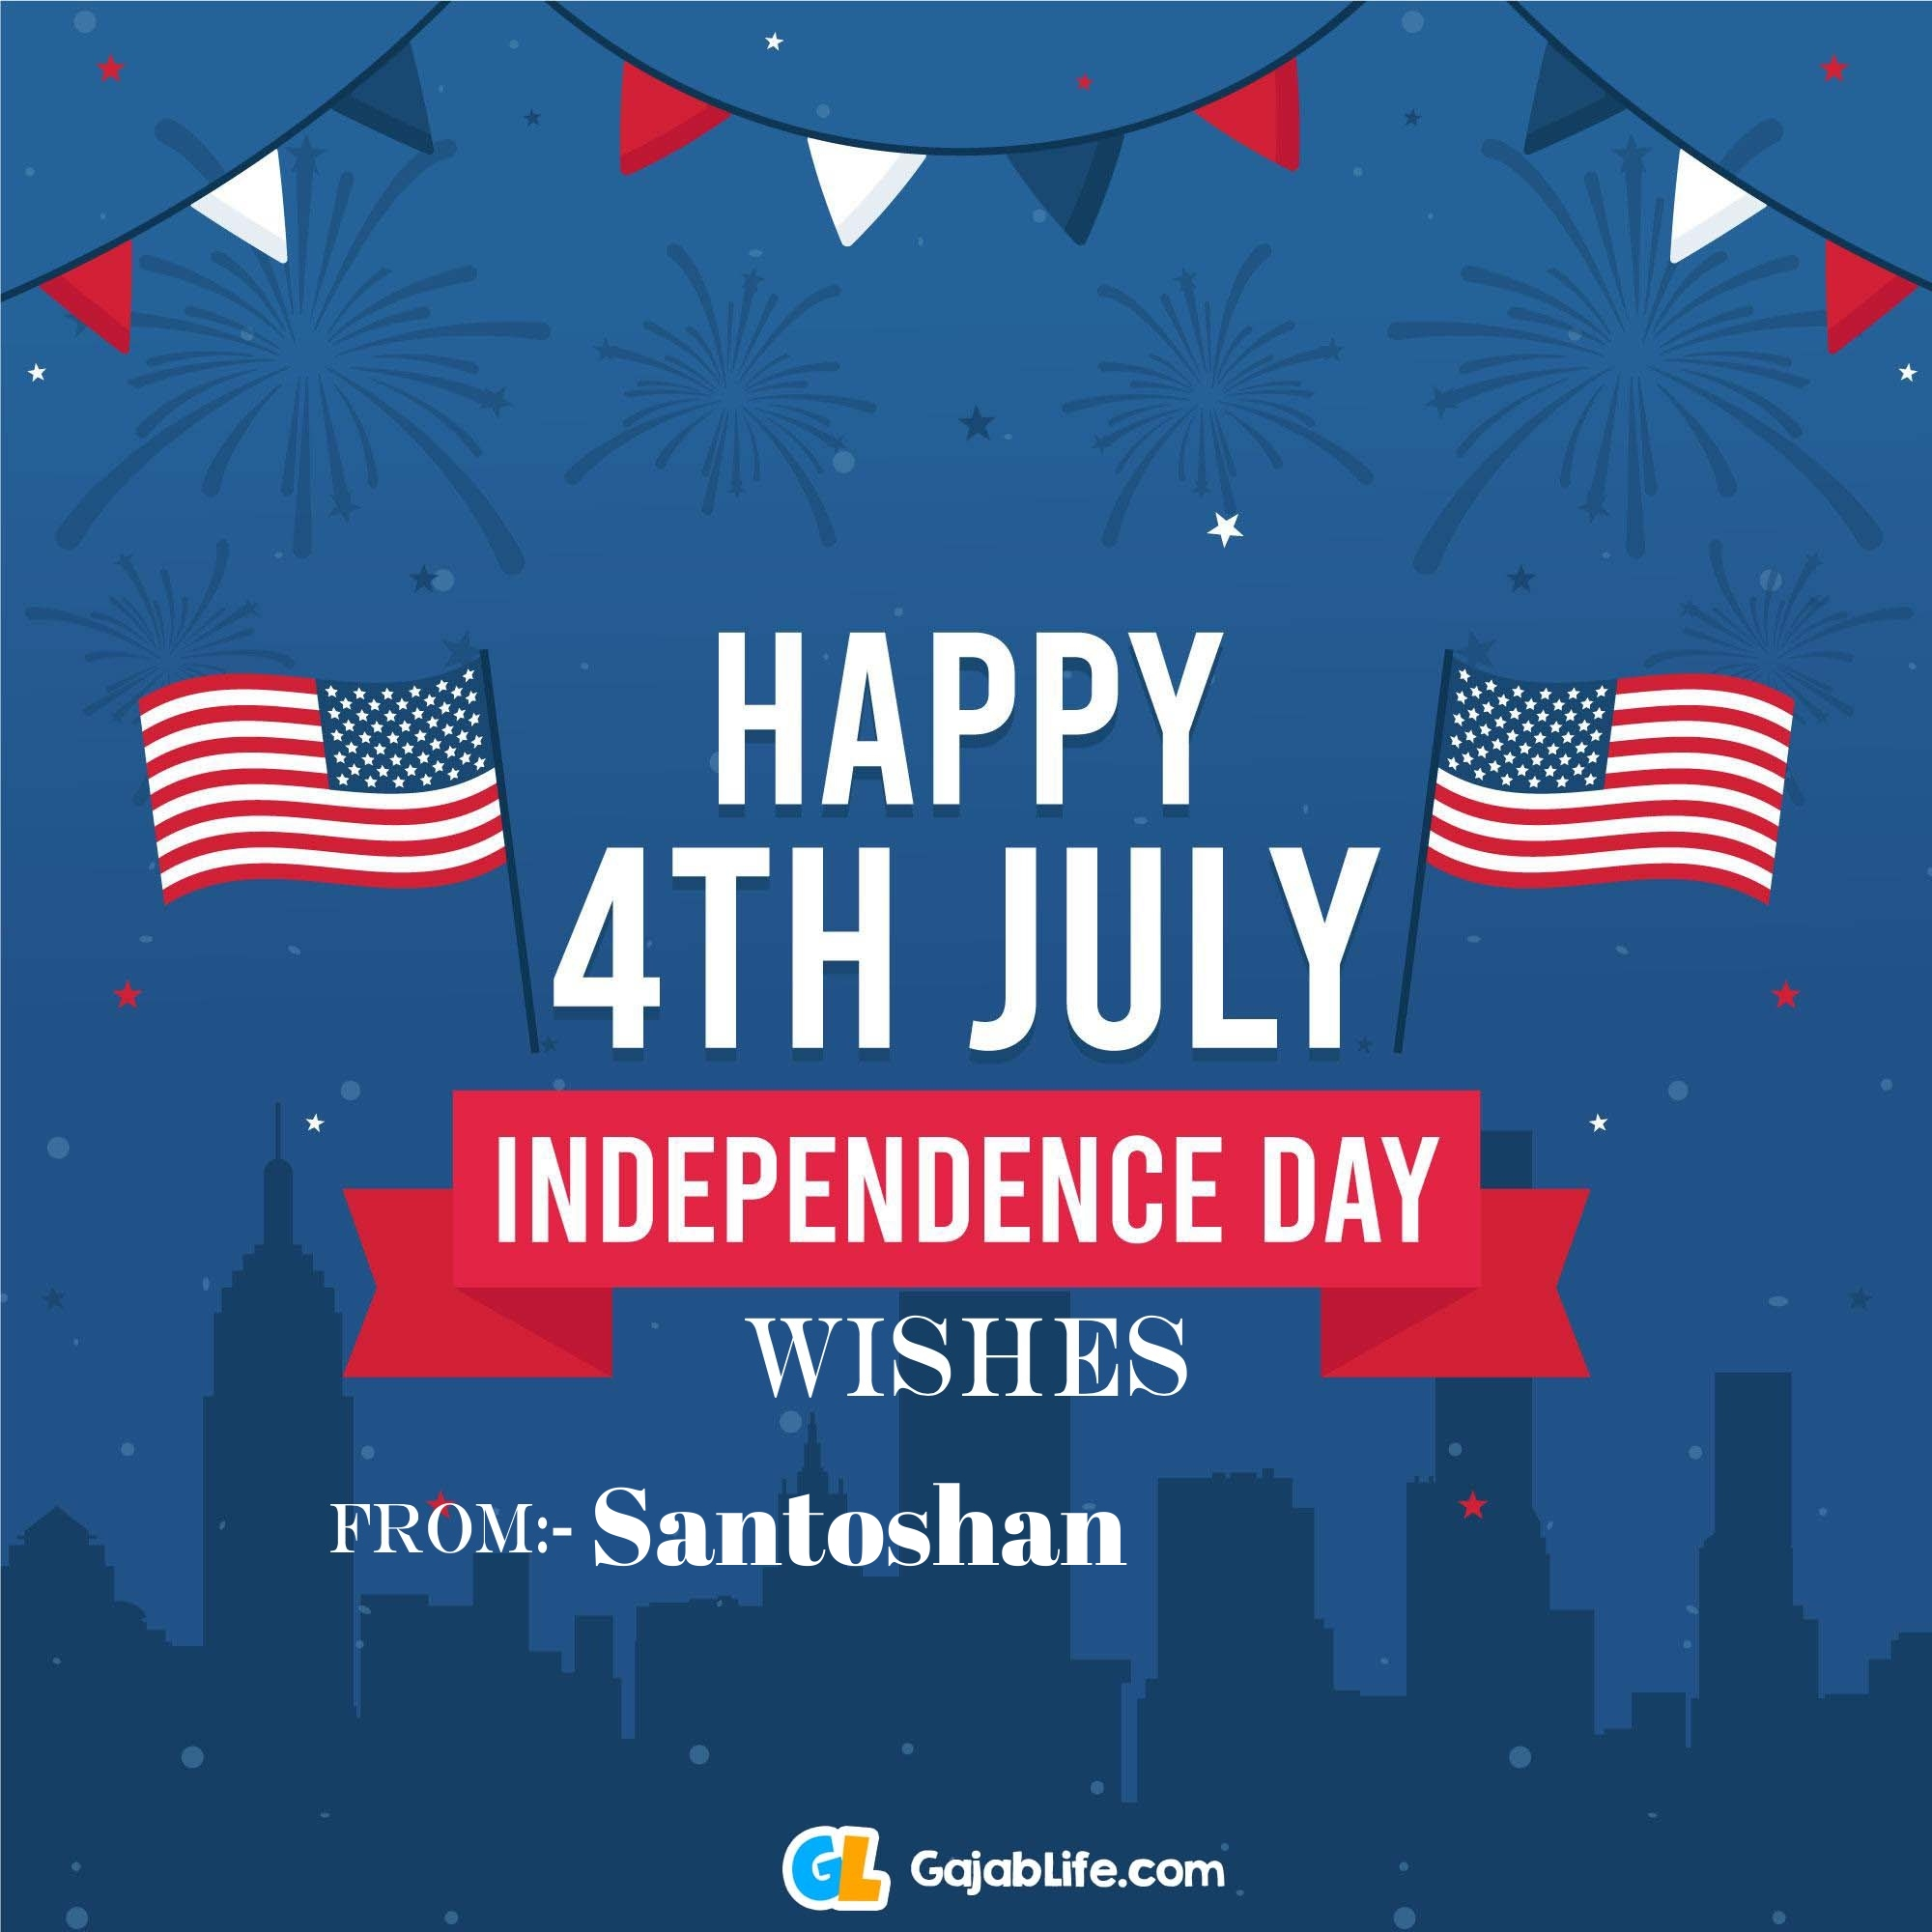 Santoshan happy independence day united states of america images